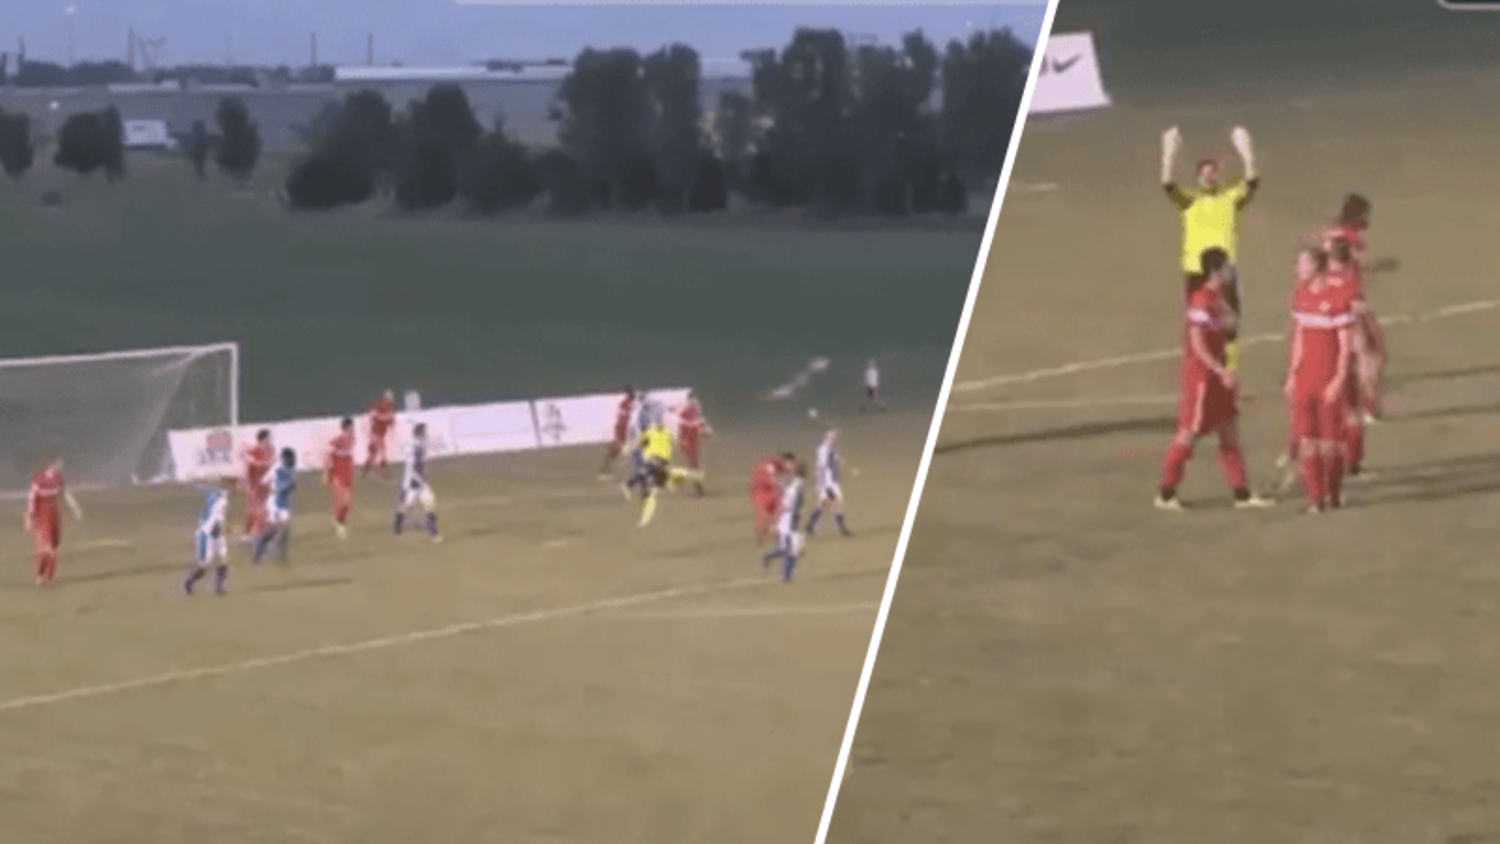 FC Wichita goakeeper Mark Weir scores outrageous goal from his own box